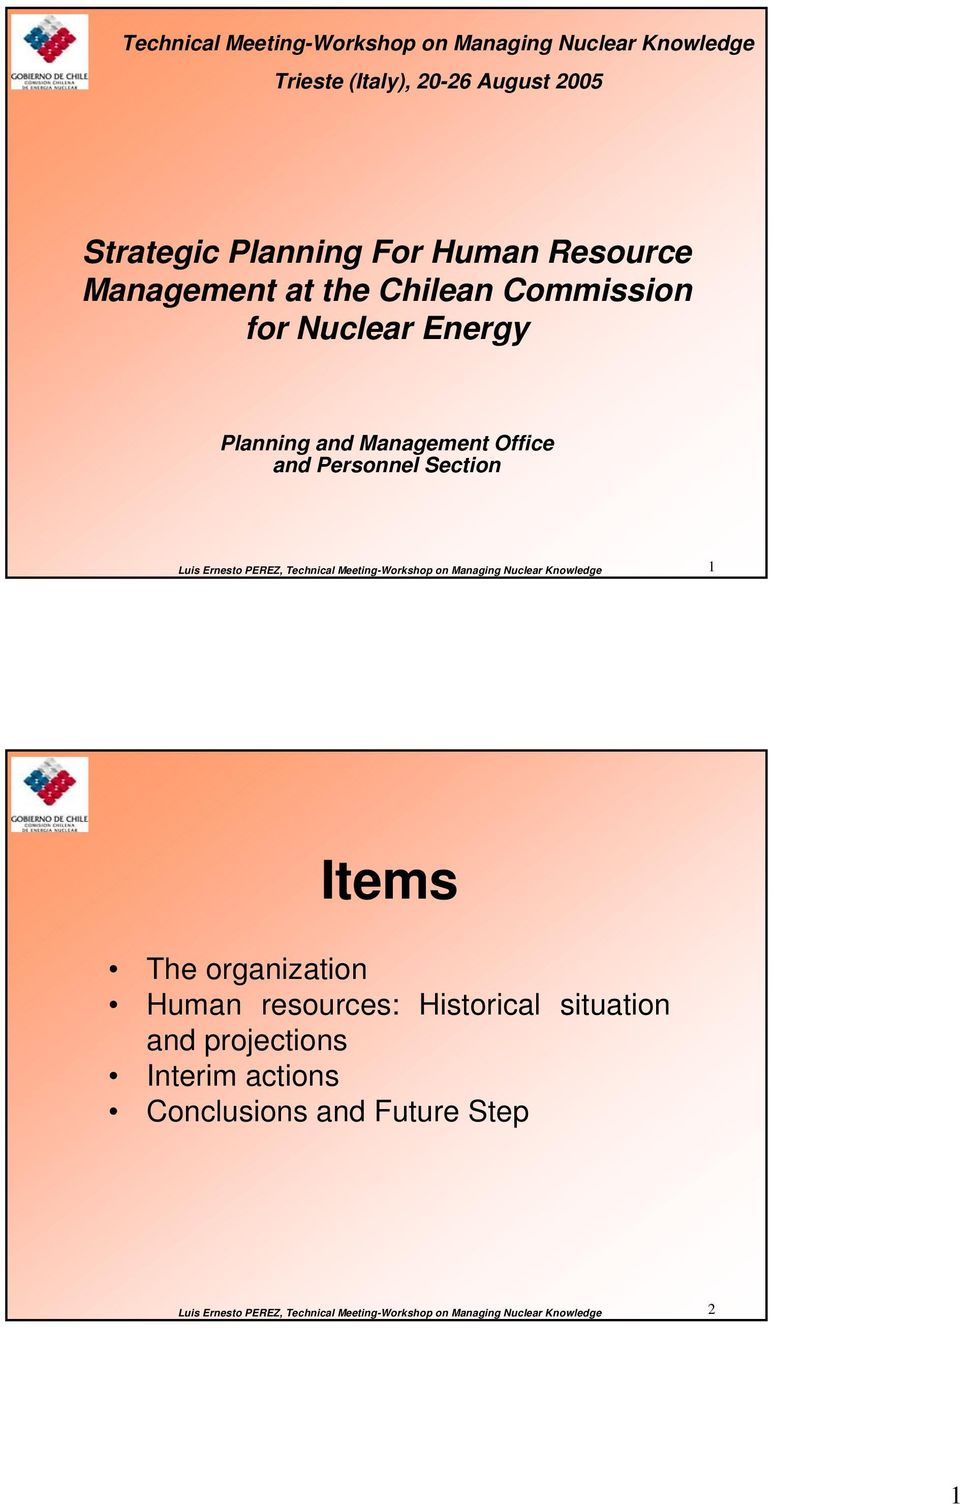 Technical Meeting-Workshop on Managing Nuclear Knowledge 1 Items The organization Human resources: Historical situation and